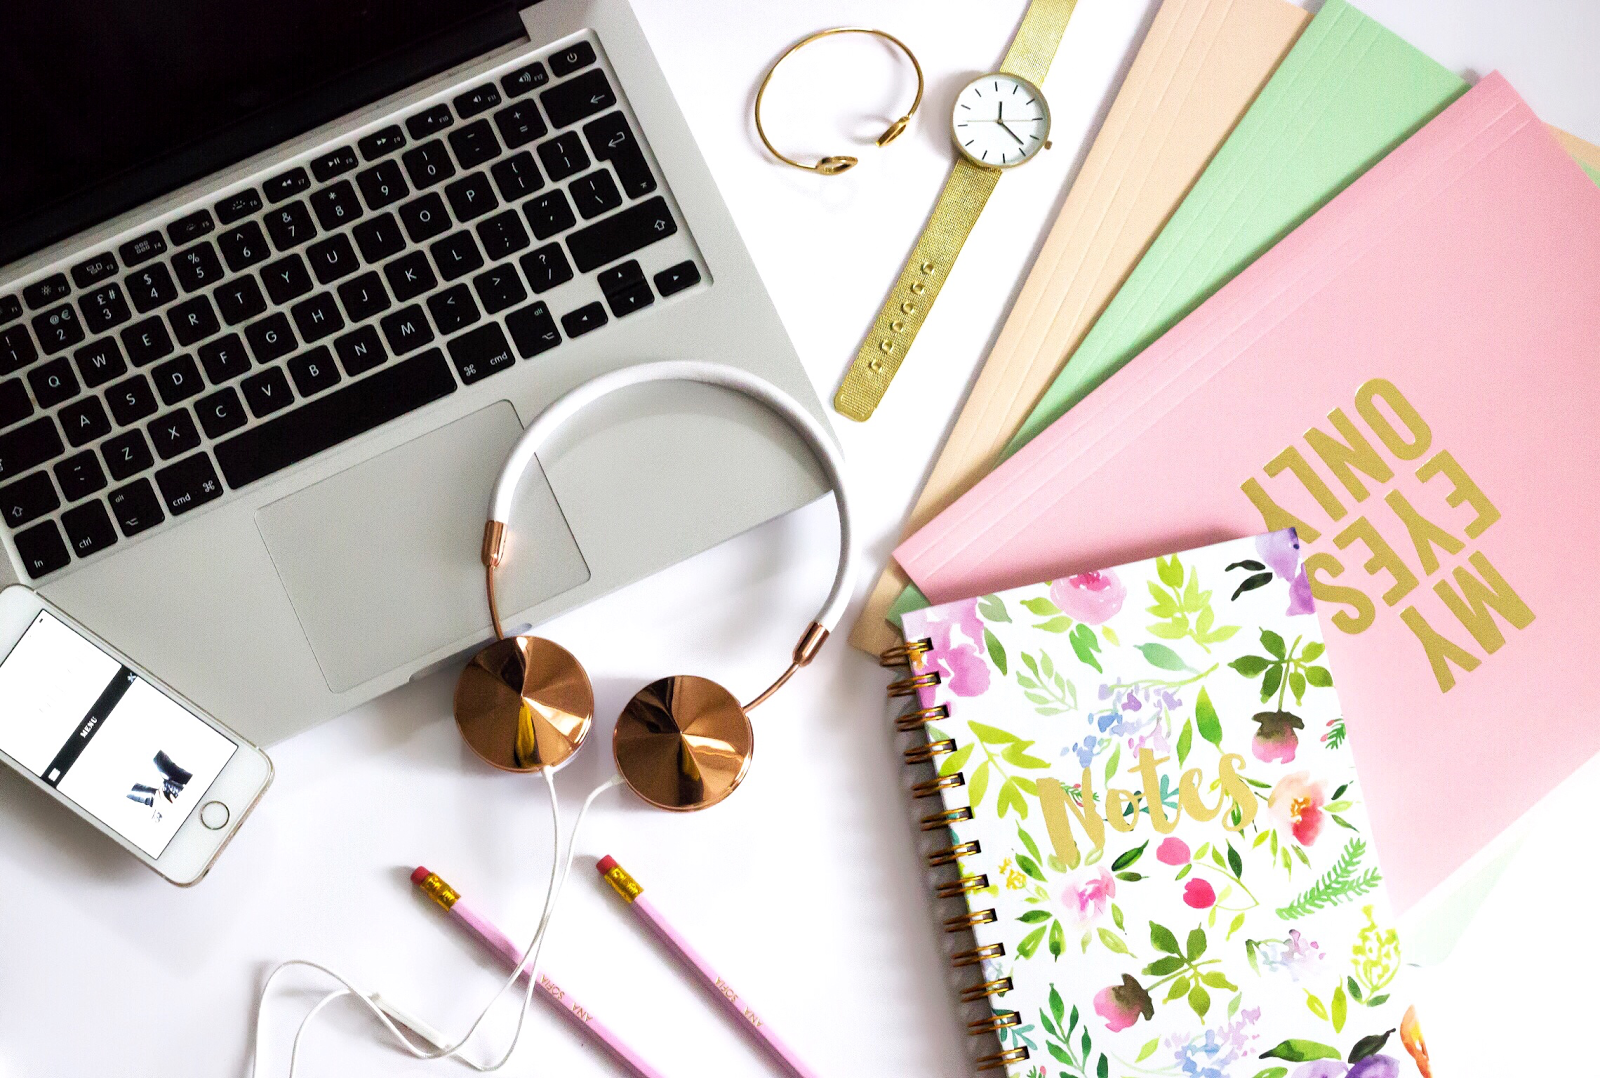 flatlay, desk, organisation, organised, frends, rose gold headphones, interior design, beauty blogger, fashion blogger, lifestyle blogger